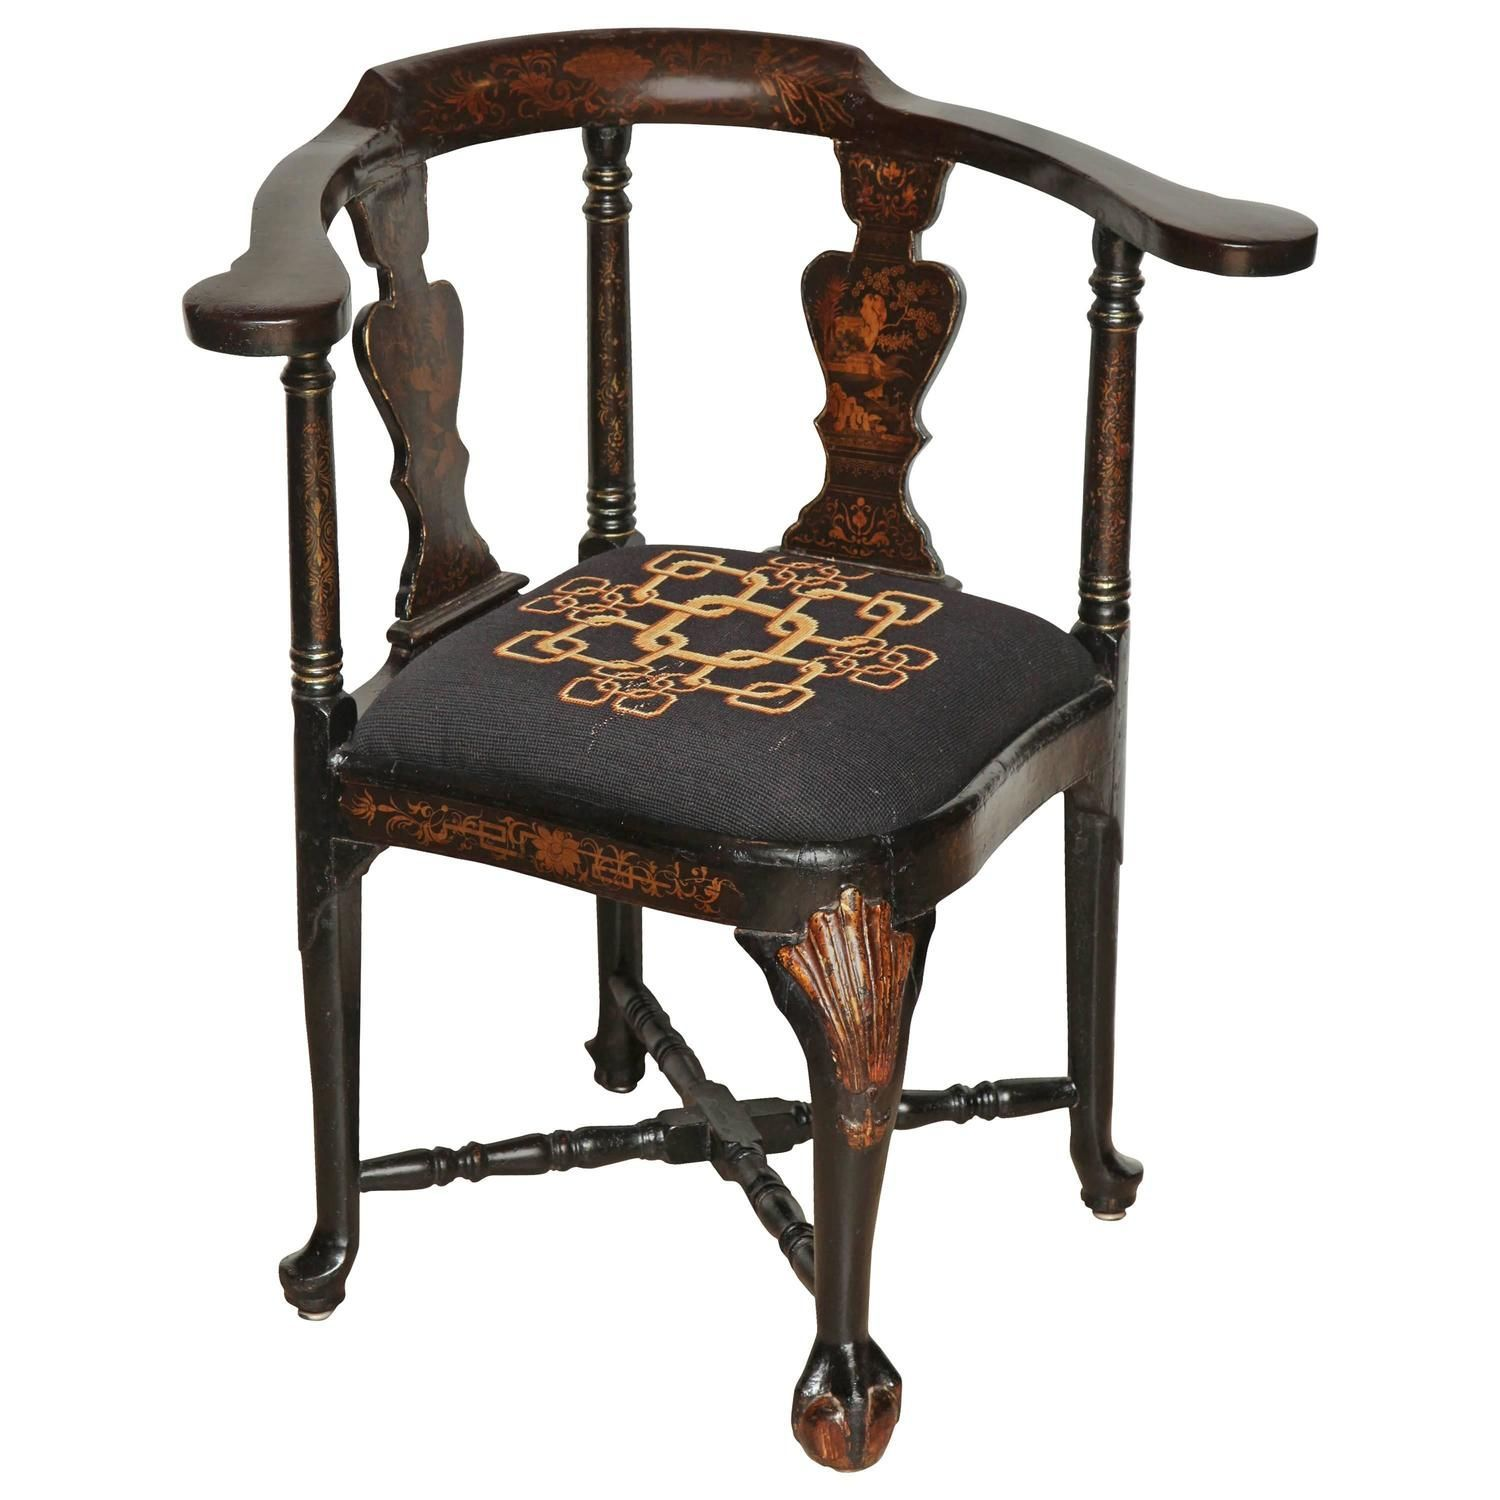 Unique Home Accessories Chairs - English Chinoiserie Decorated